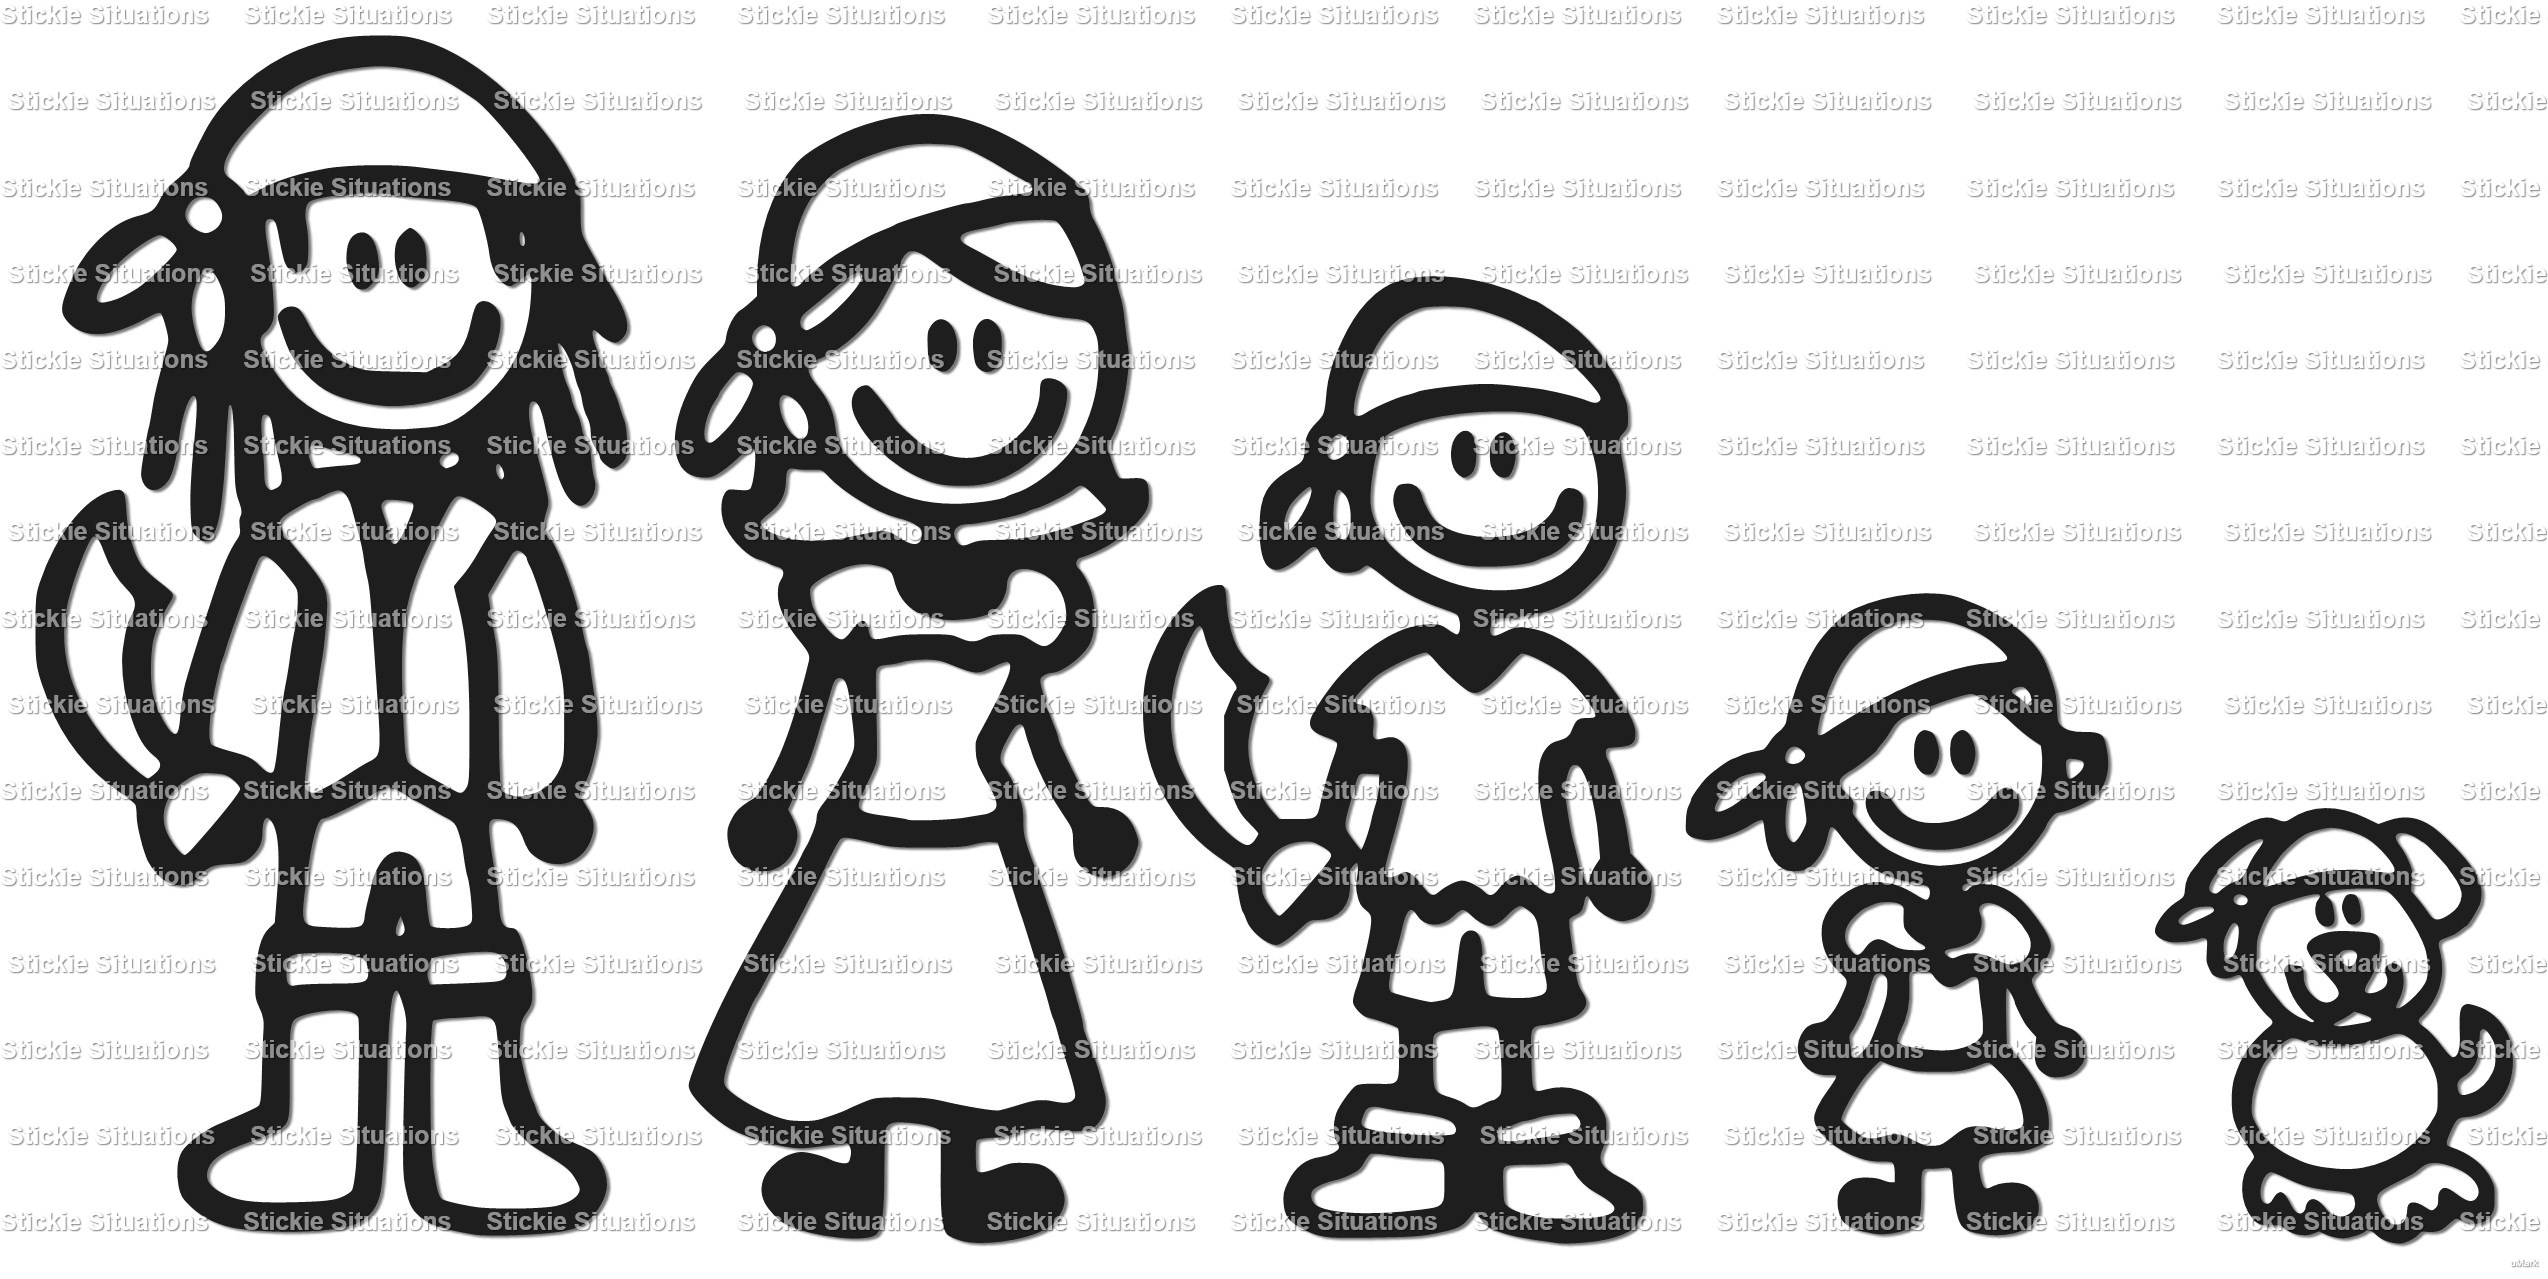 Pirate Family Car Decal Design   Stickie Situations  Online - Design car decals online